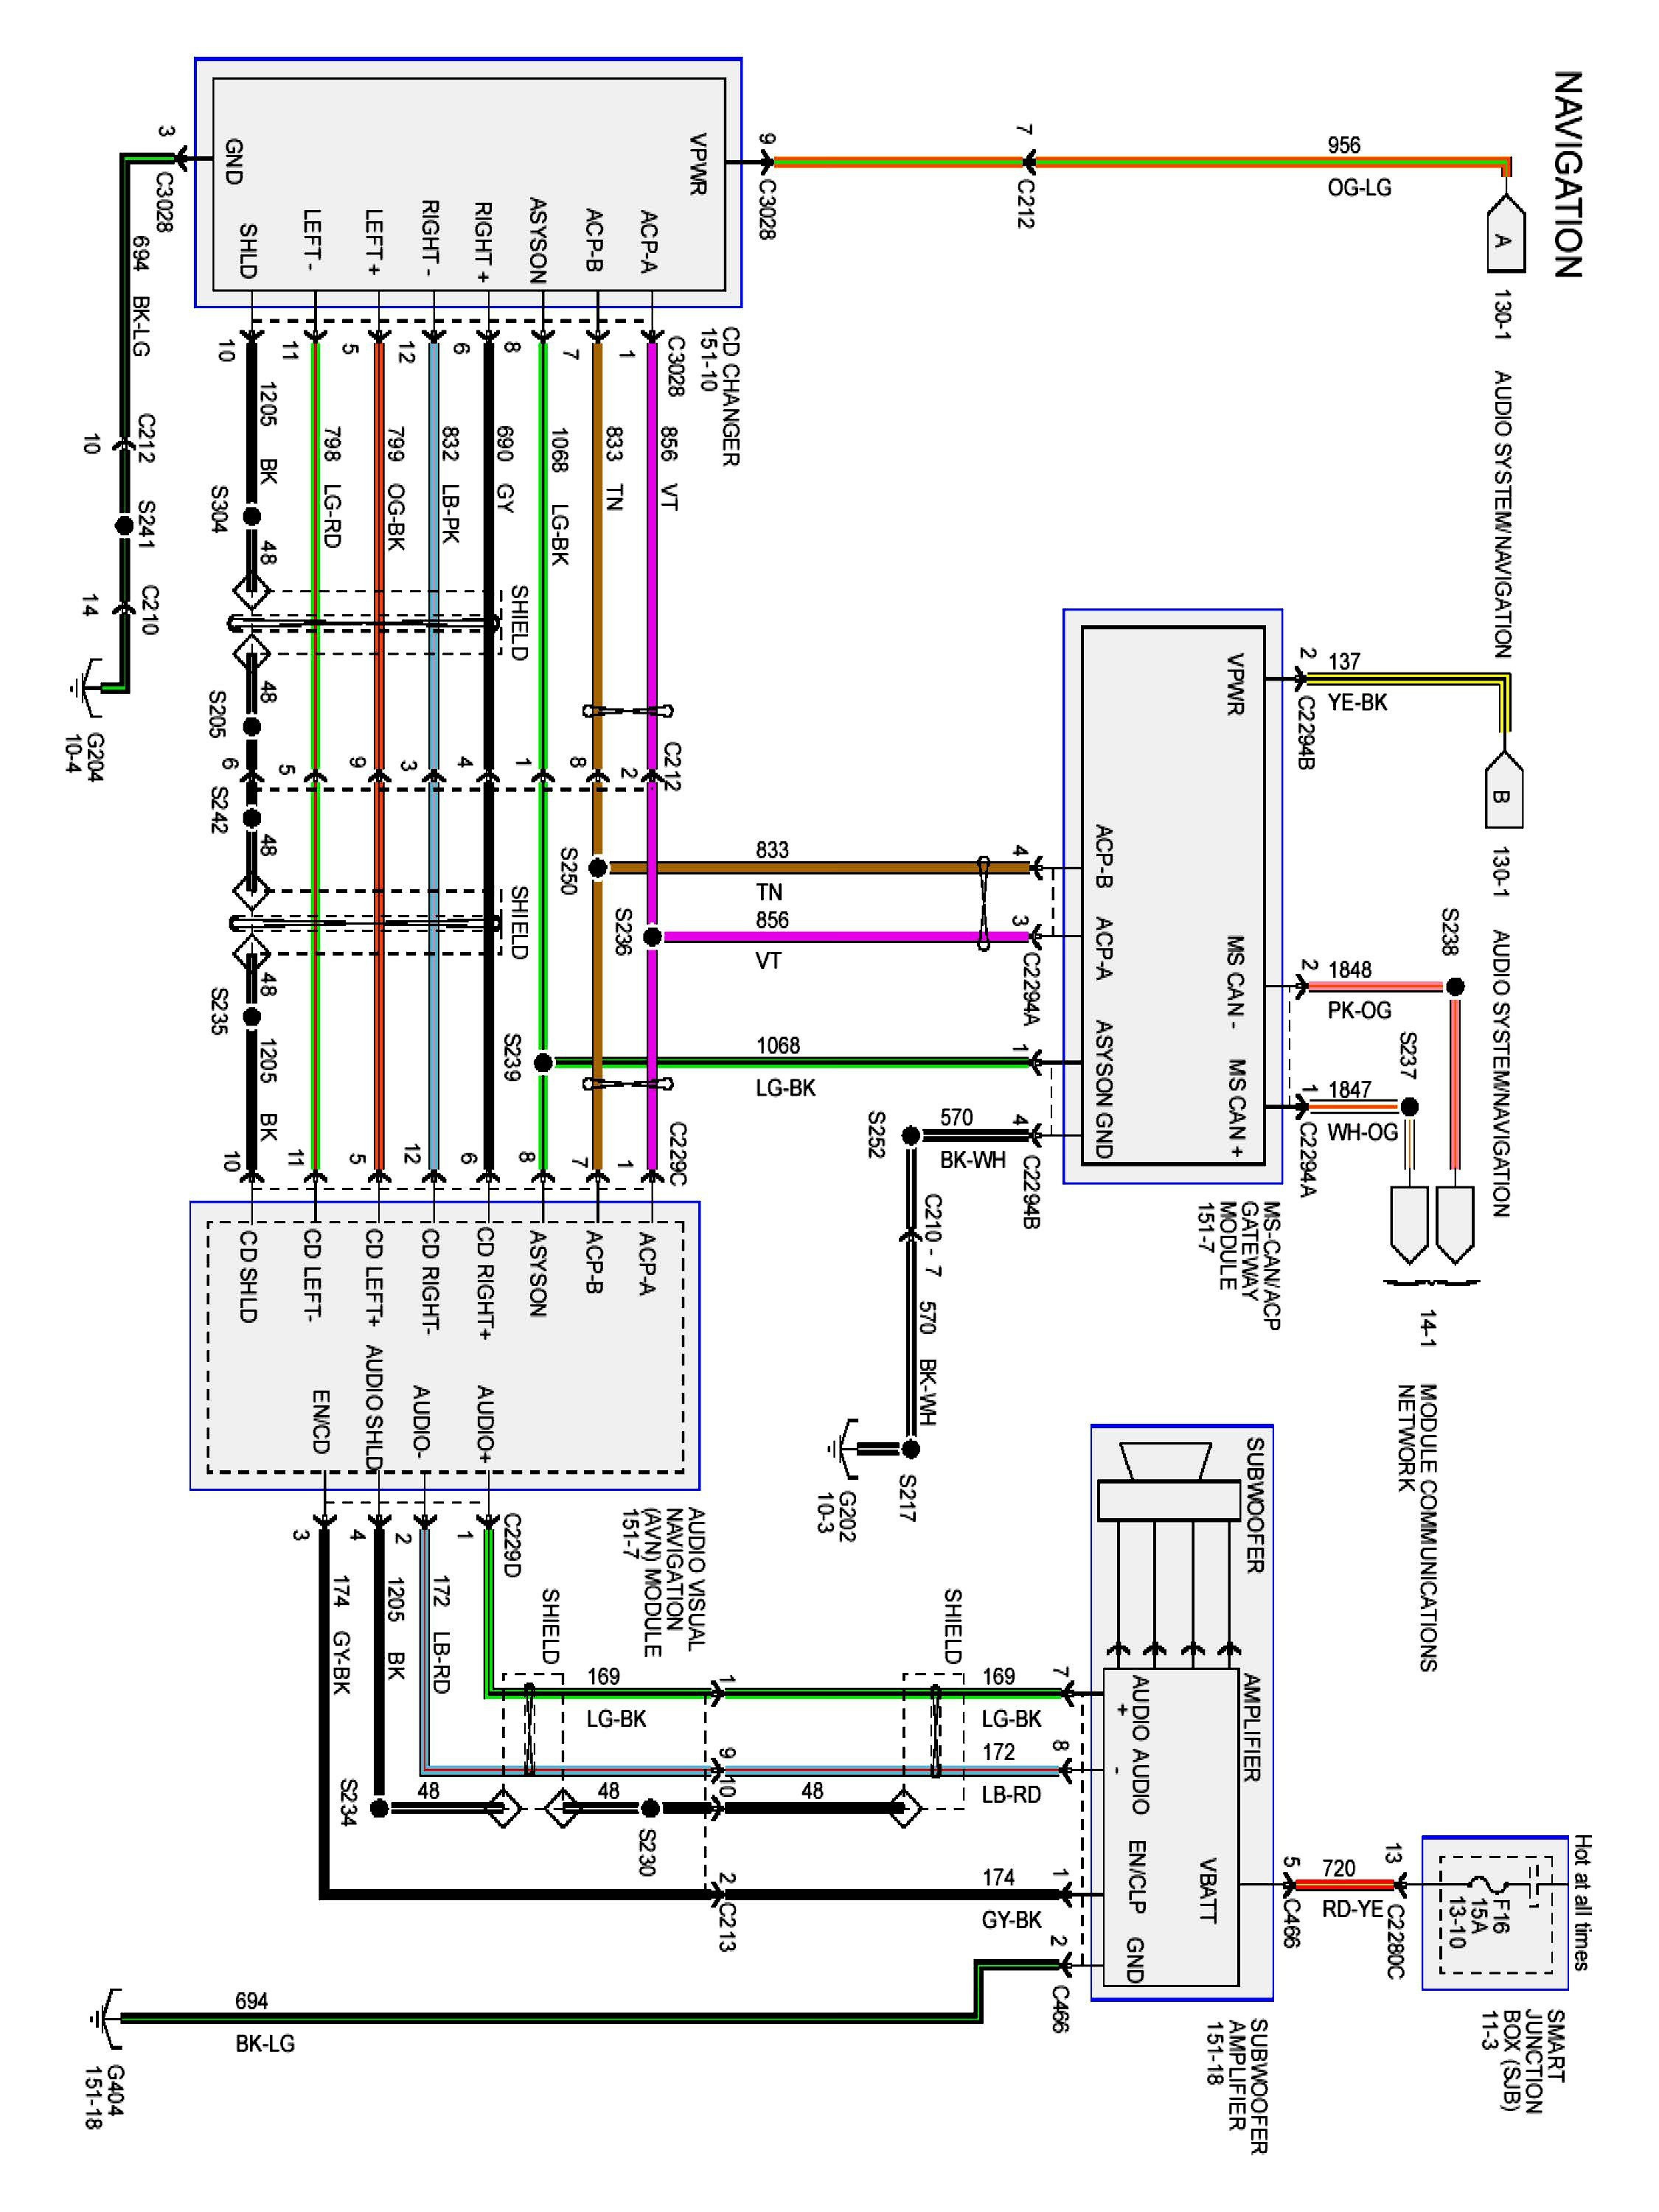 2004 Chevy Impala Wiring Diagram For Stereo - Wiring ...